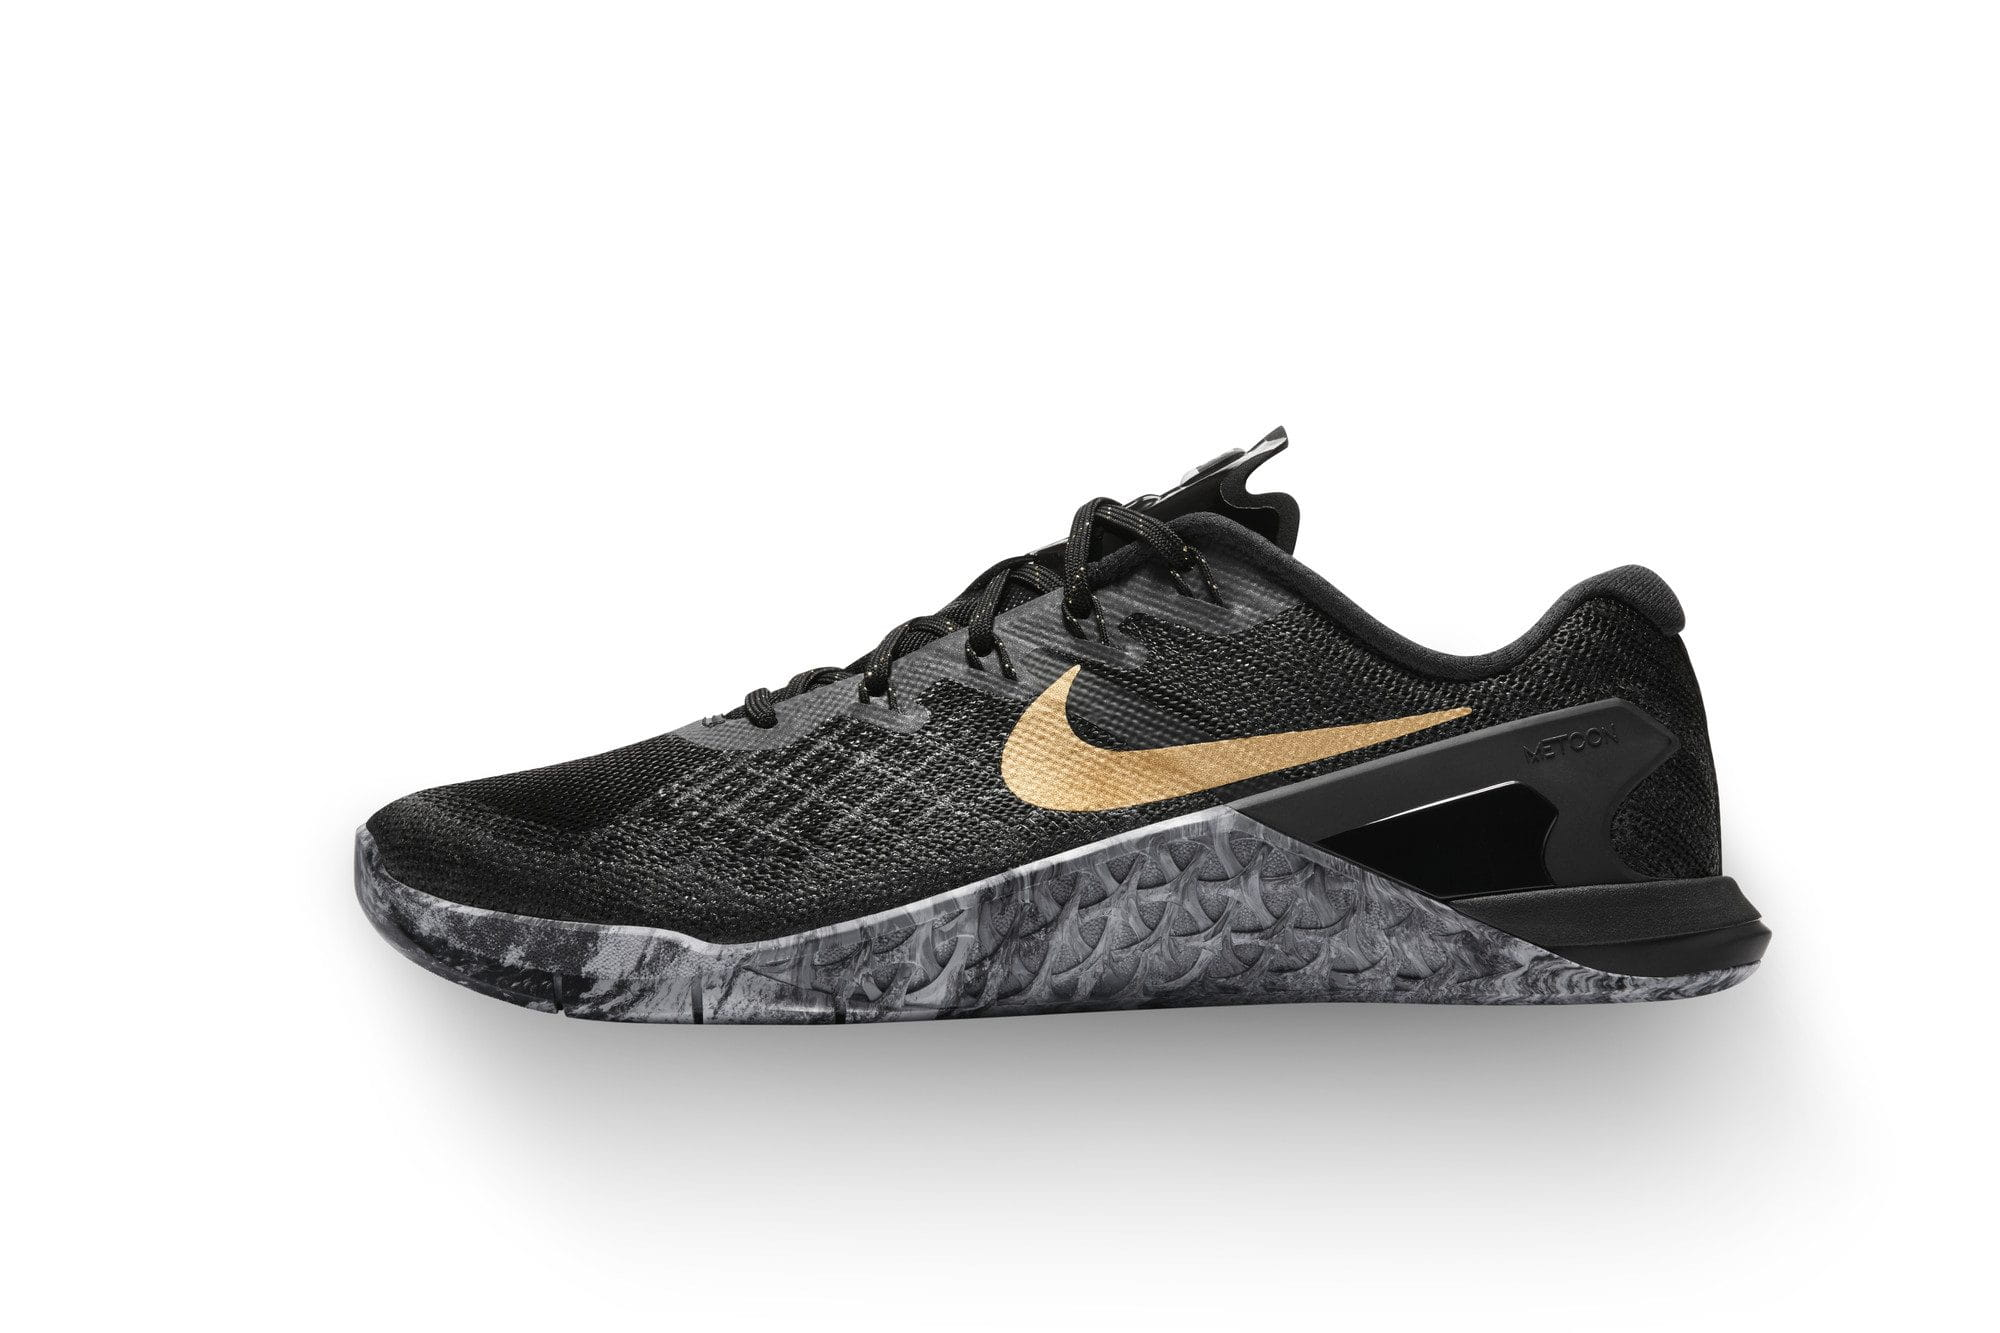 Nike Metcon 3 Black X Gold Female Training Shoe